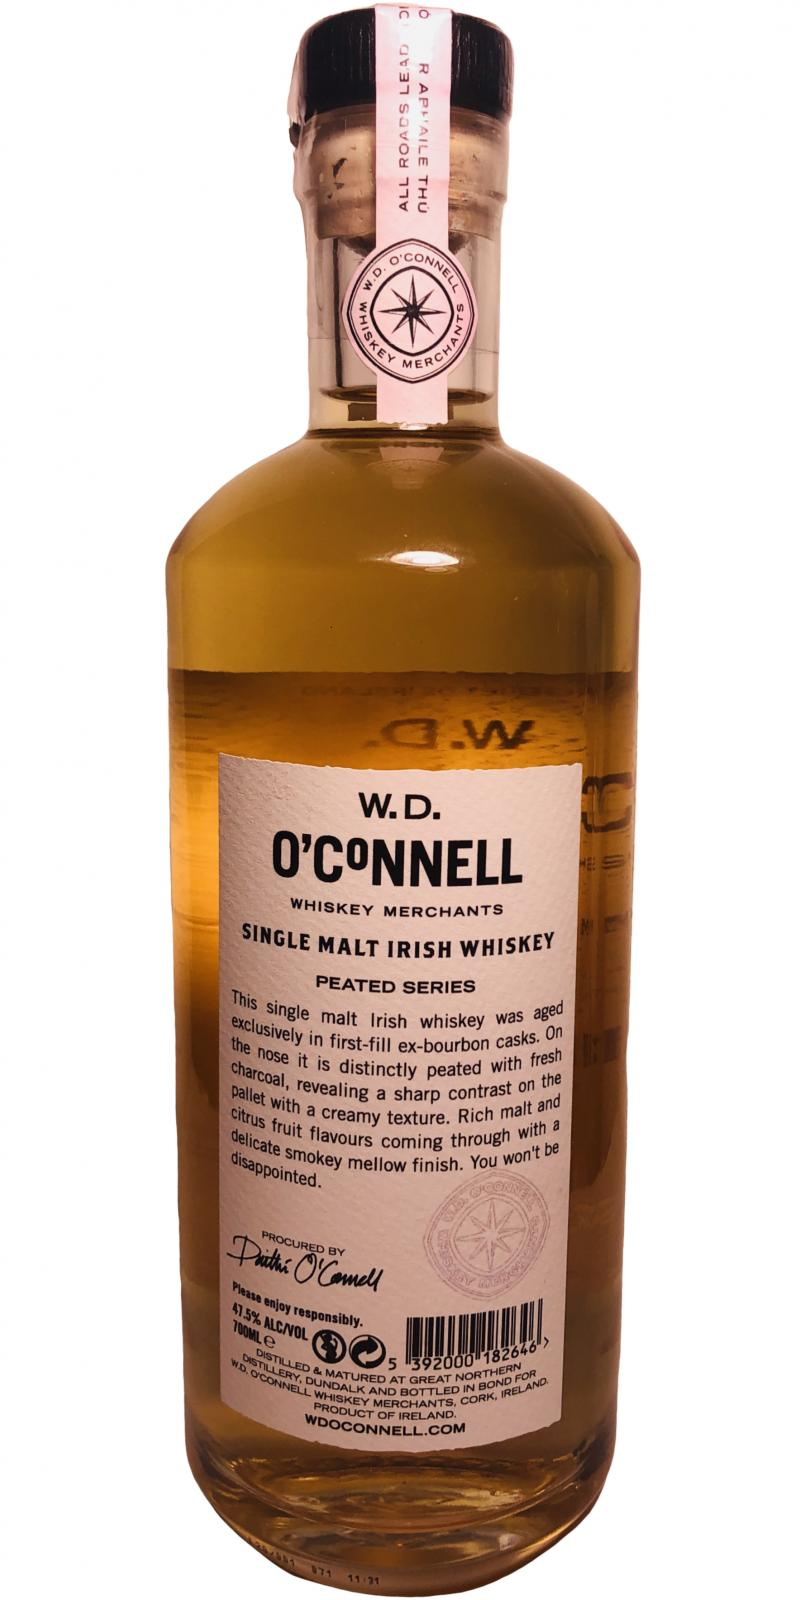 W.D. O'Connell Bill Phil - Peated Series